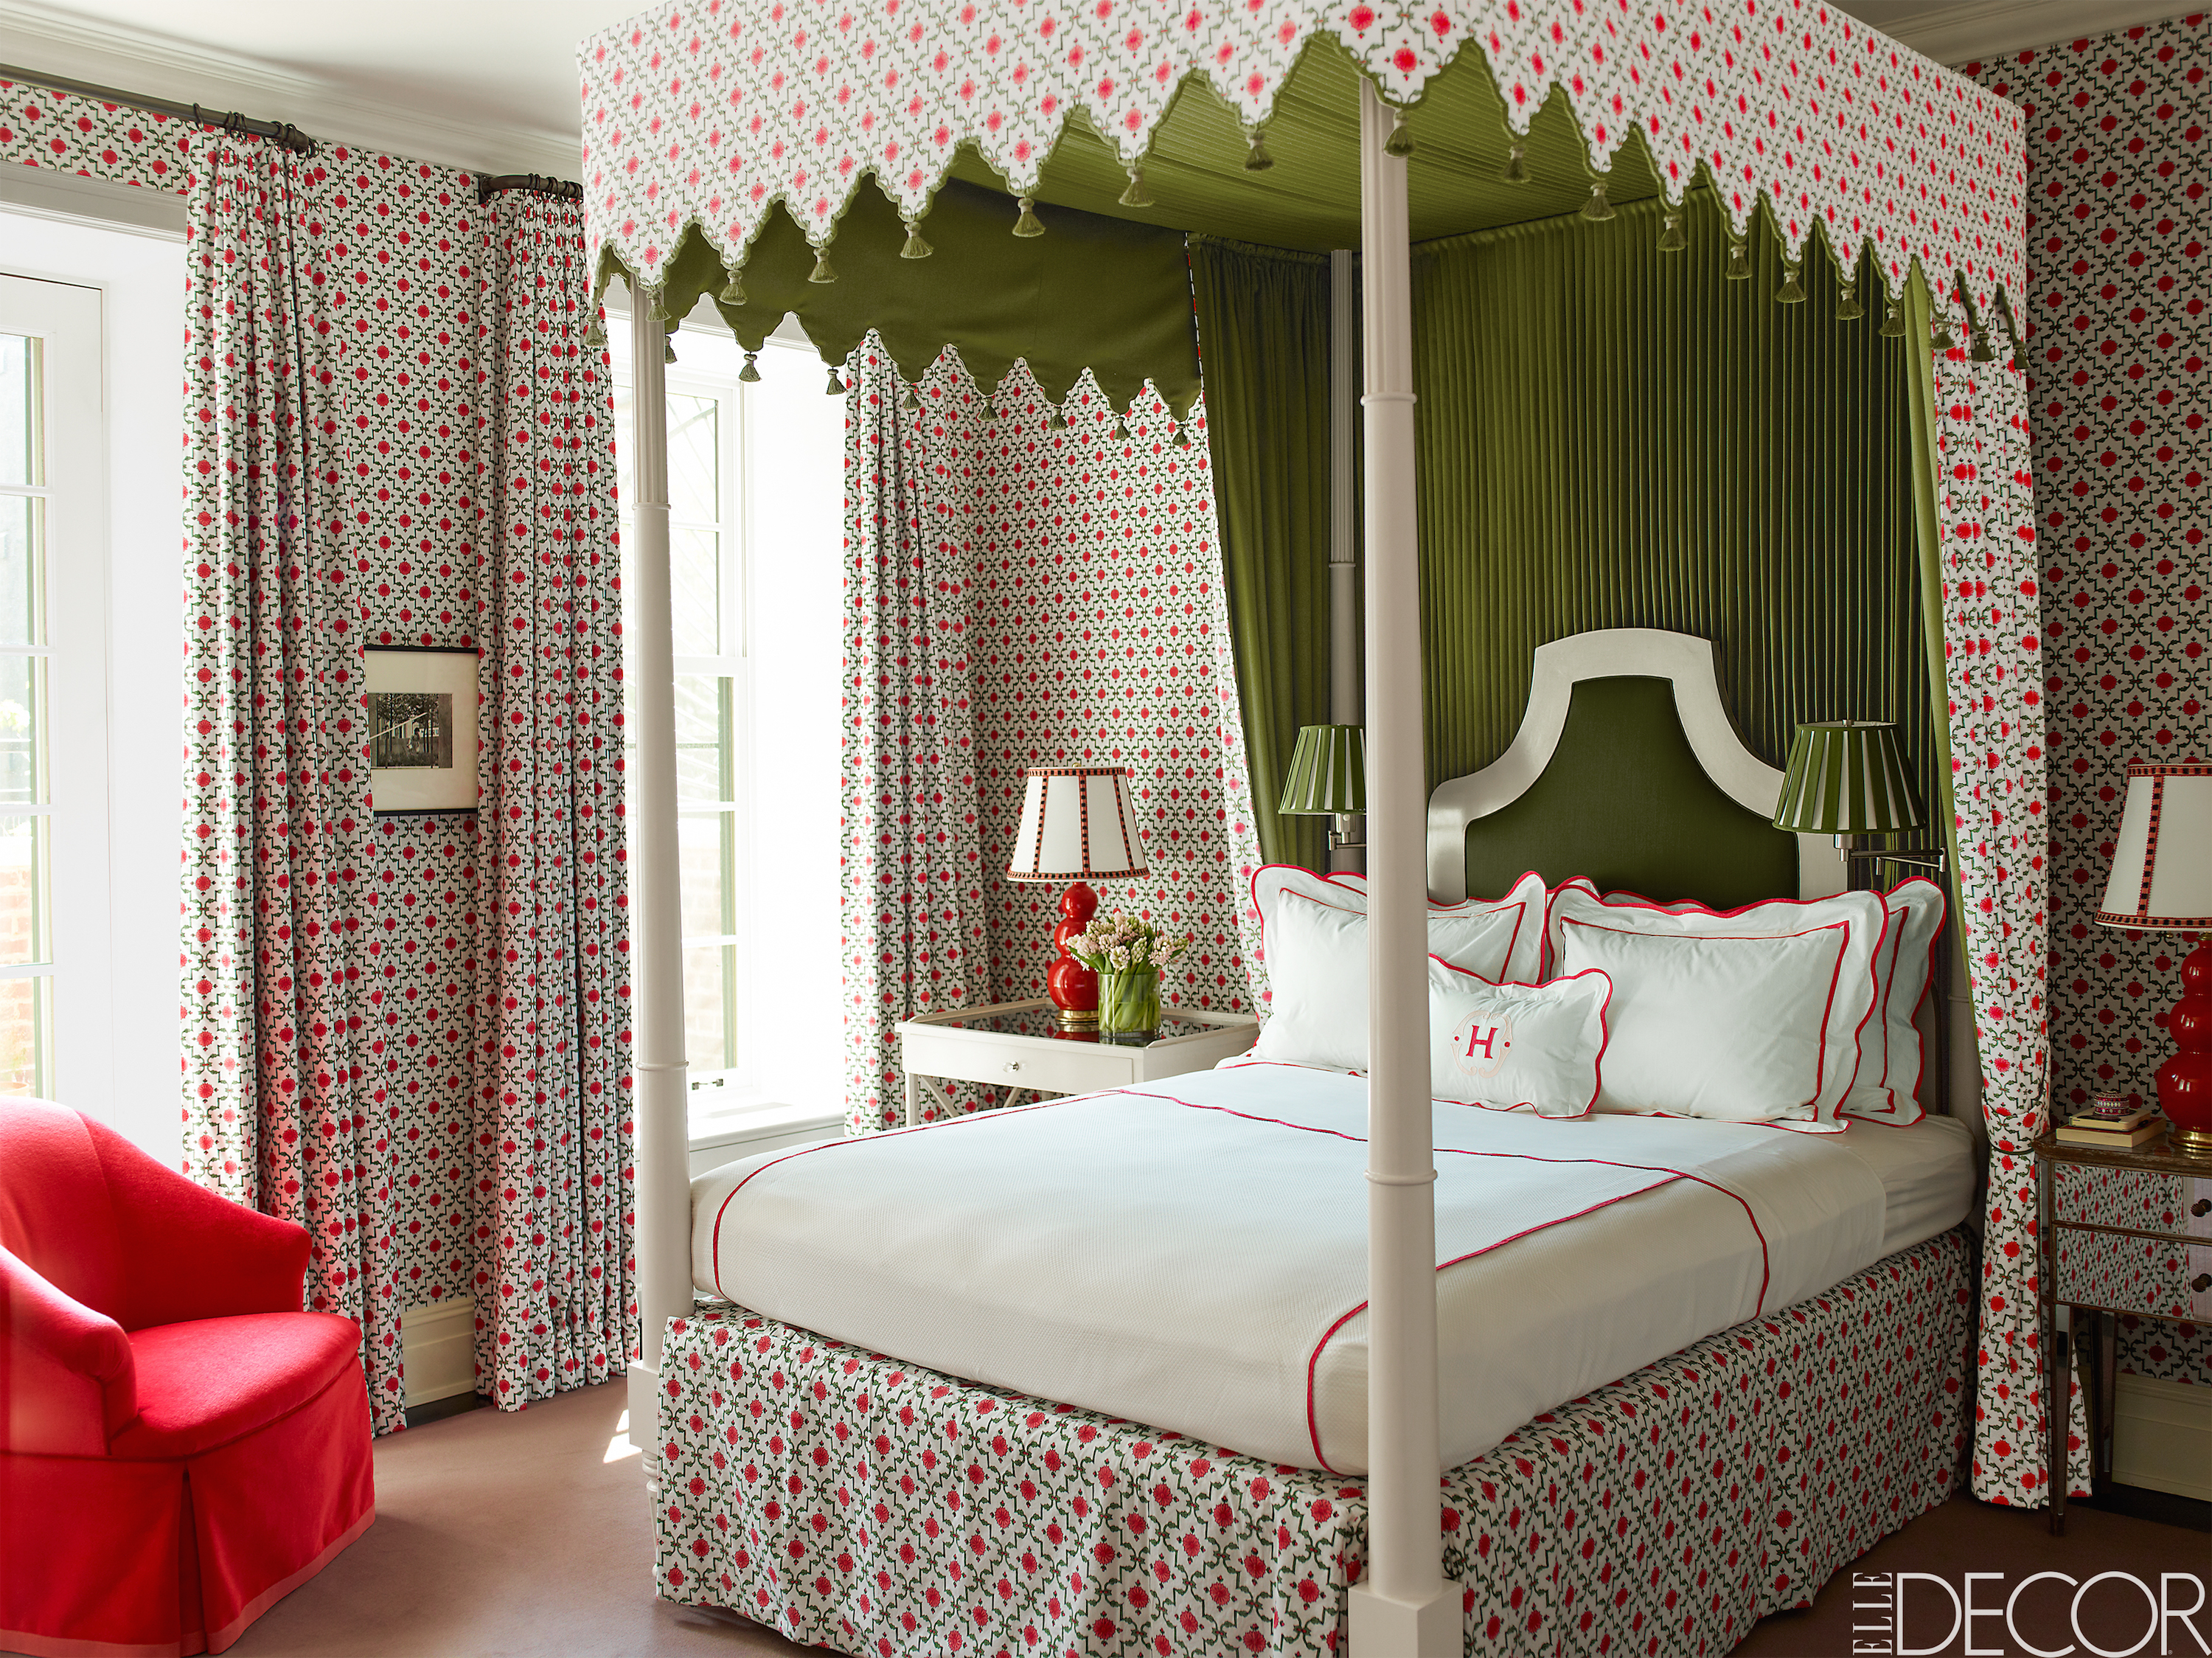 cheap hotels with kitchens affordable kitchen knives 10 girls bedroom decorating ideas - creative room ...